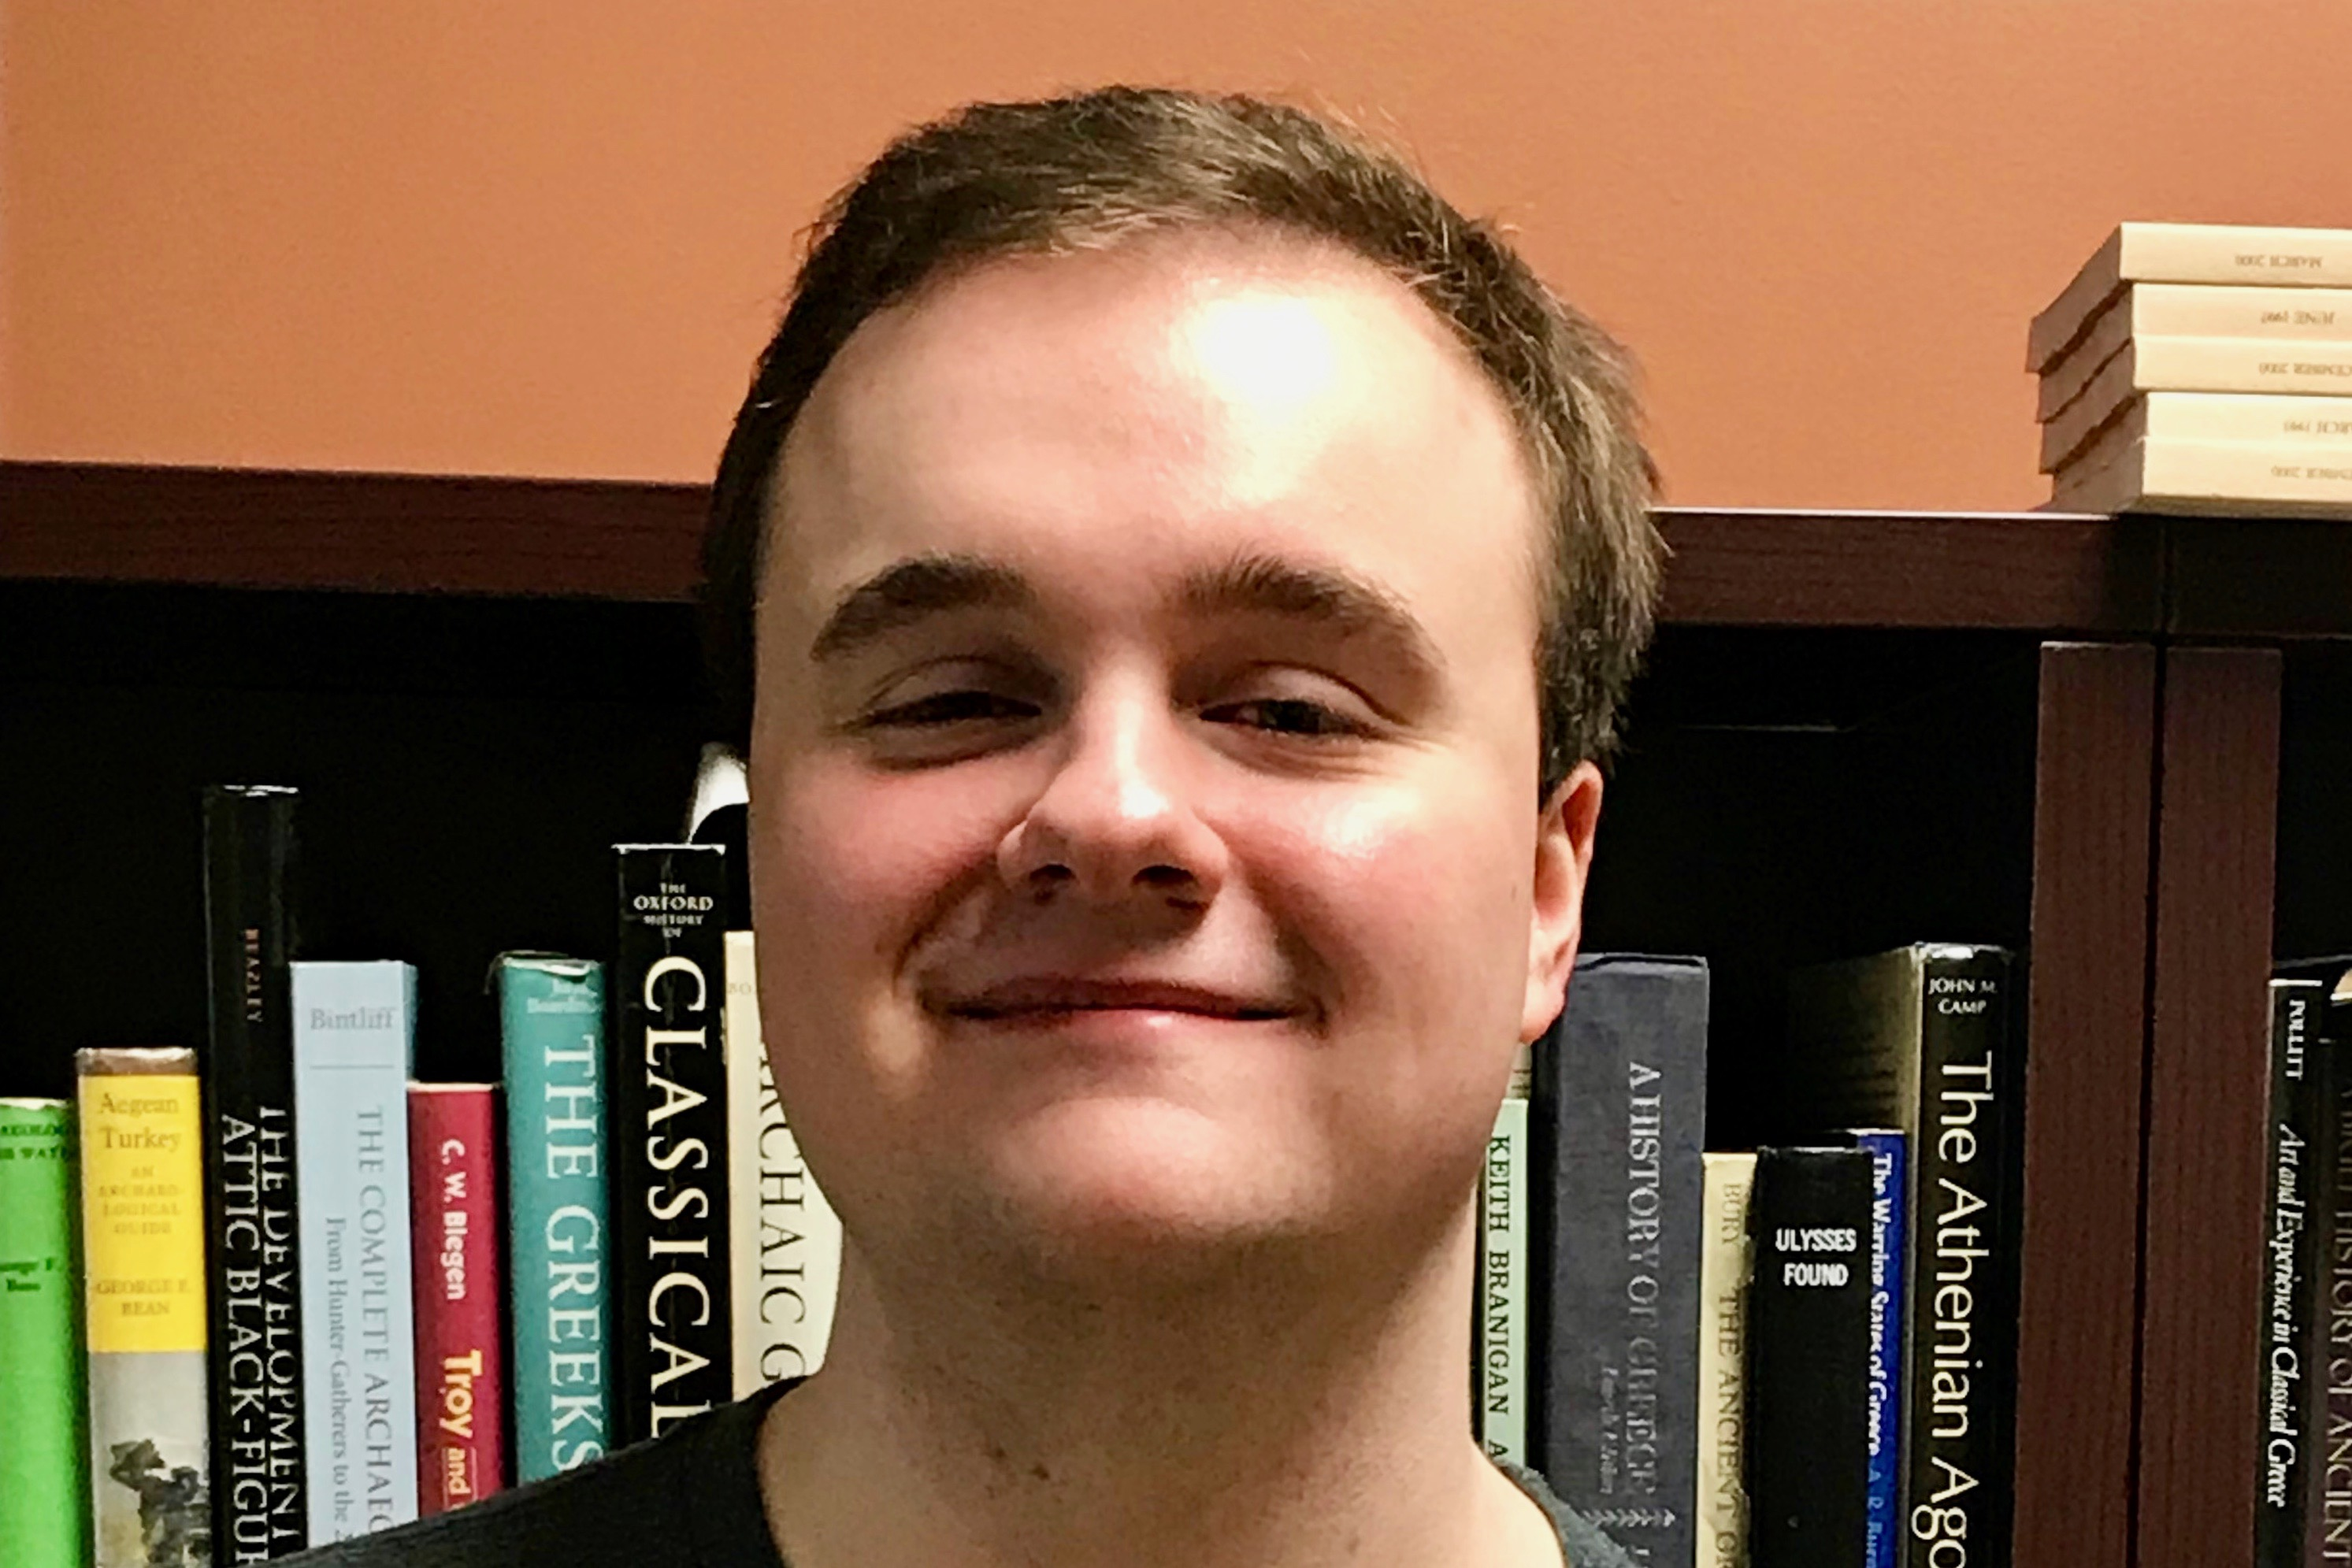 Austin Peay classics senior finishes second at national translation contest